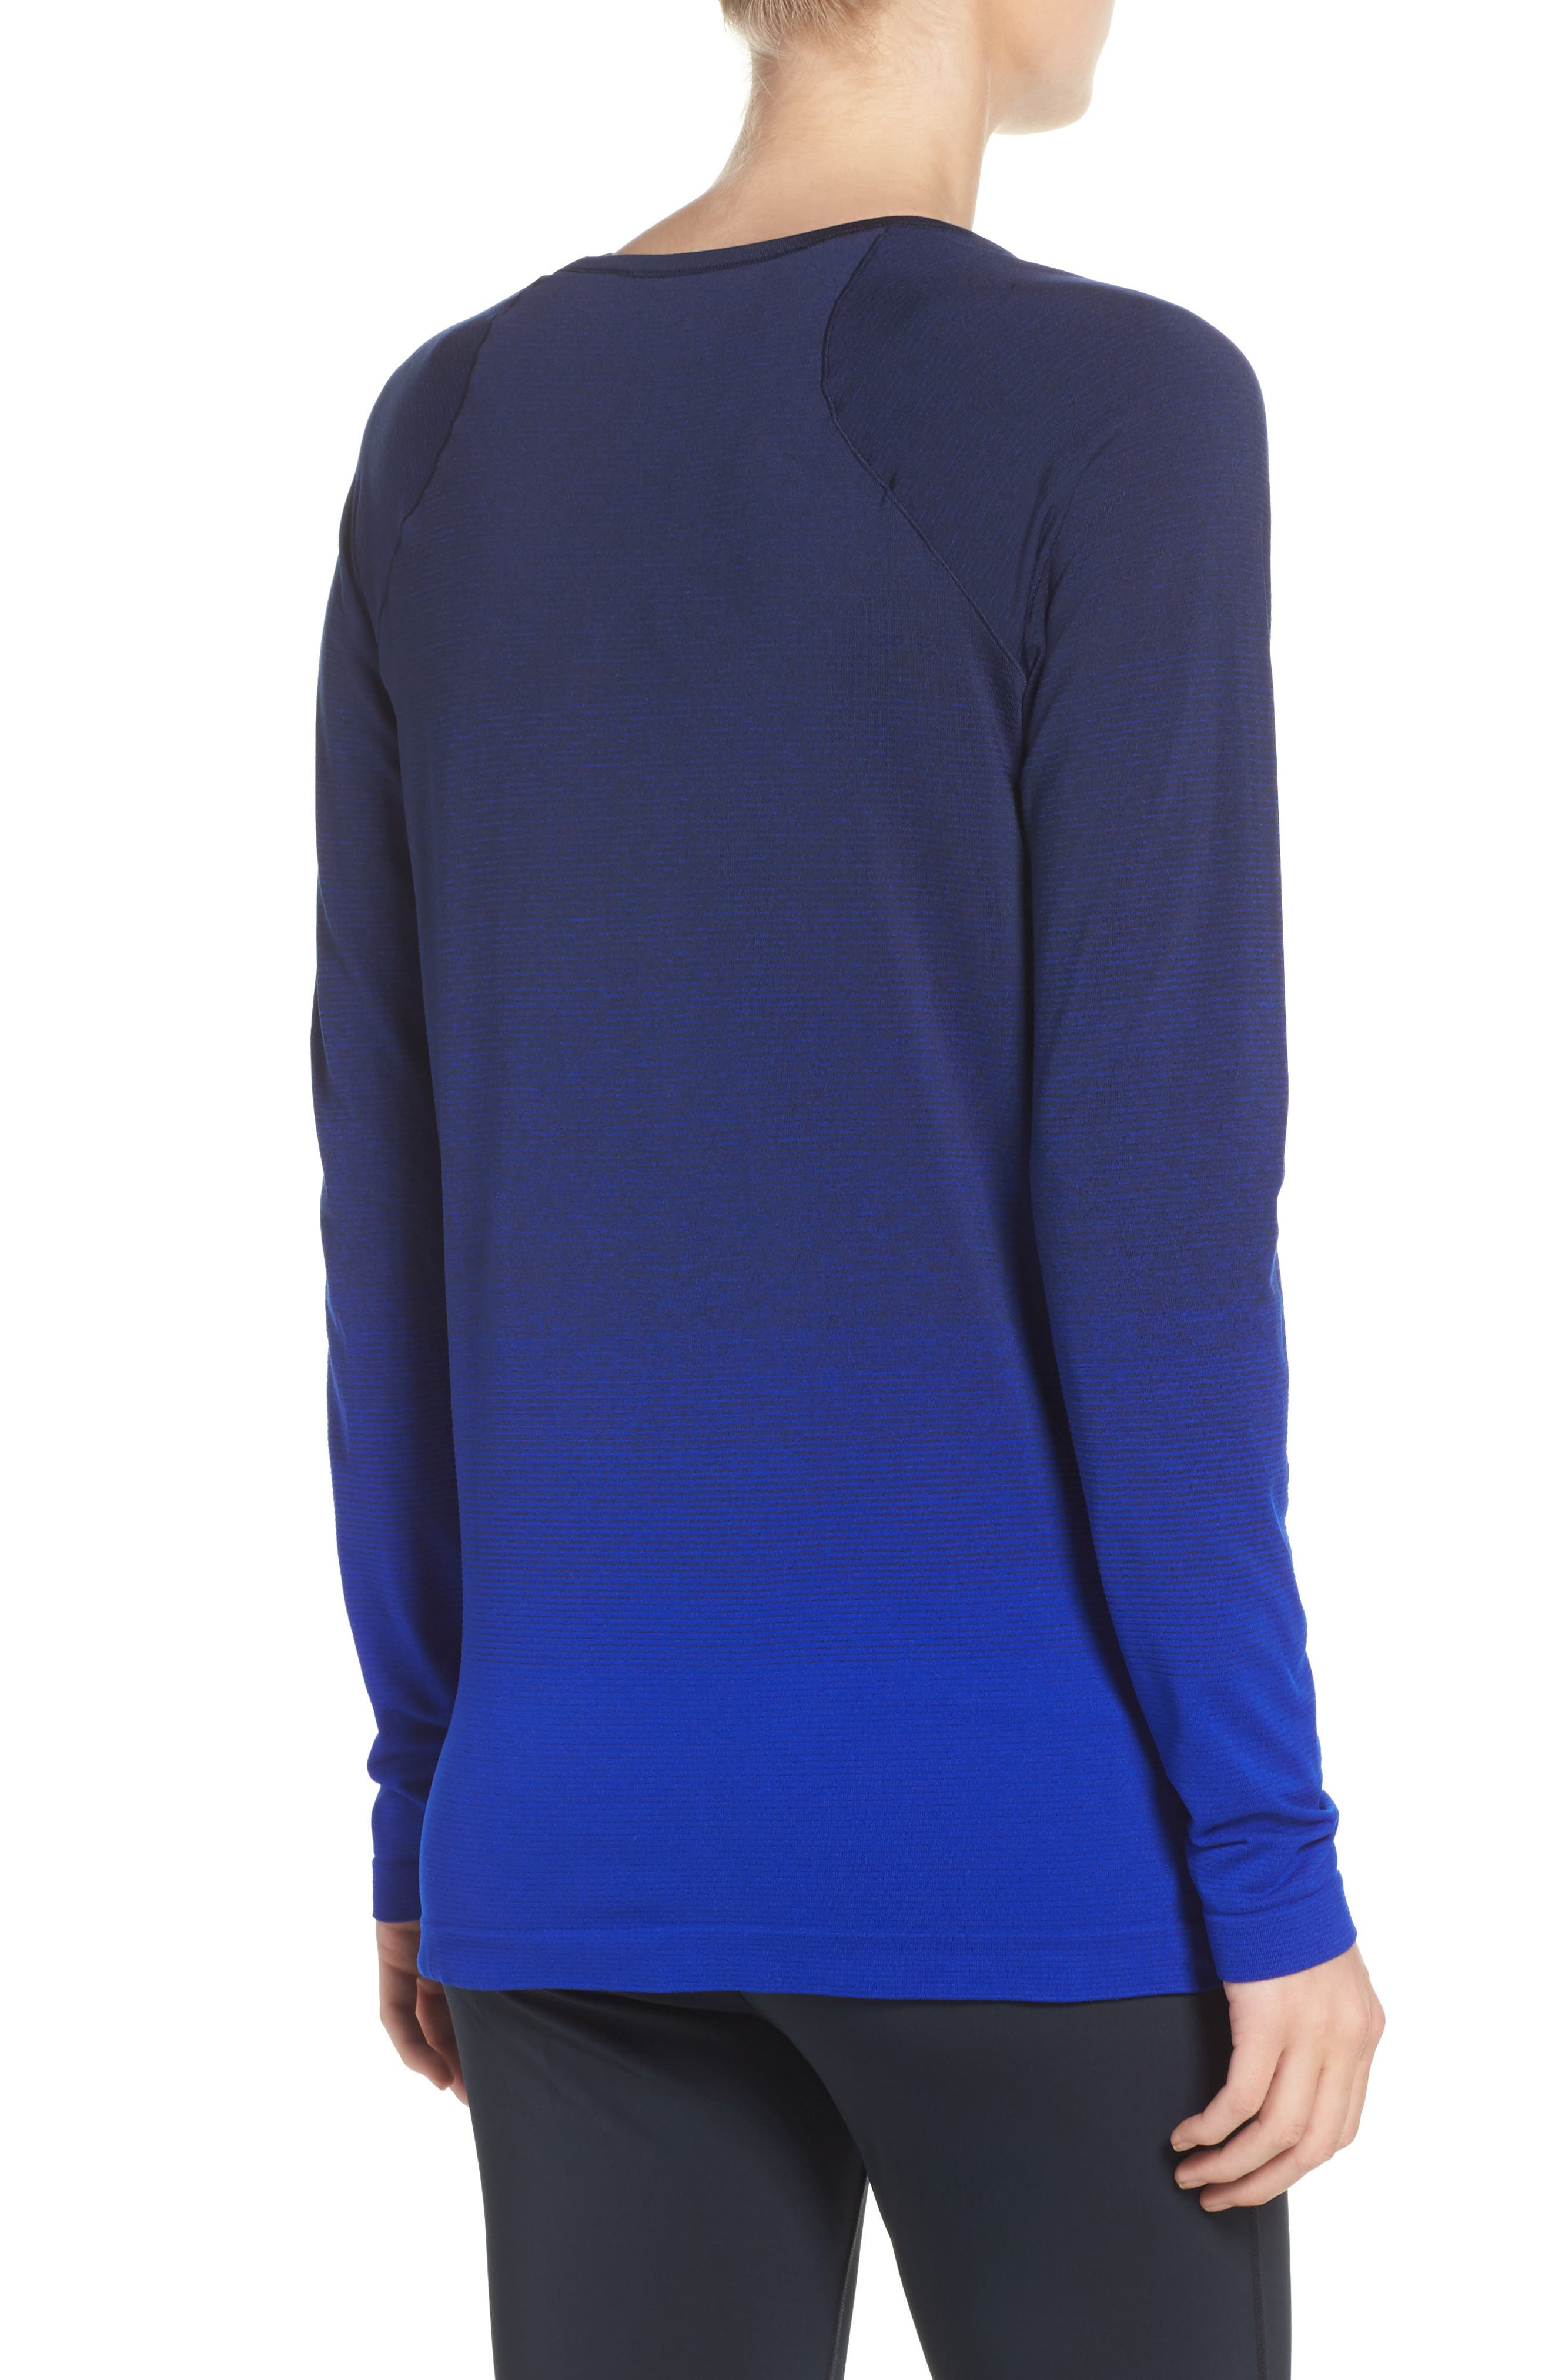 DriLayer Top,                             Alternate thumbnail 2, color,                             Navy/ Cobalt